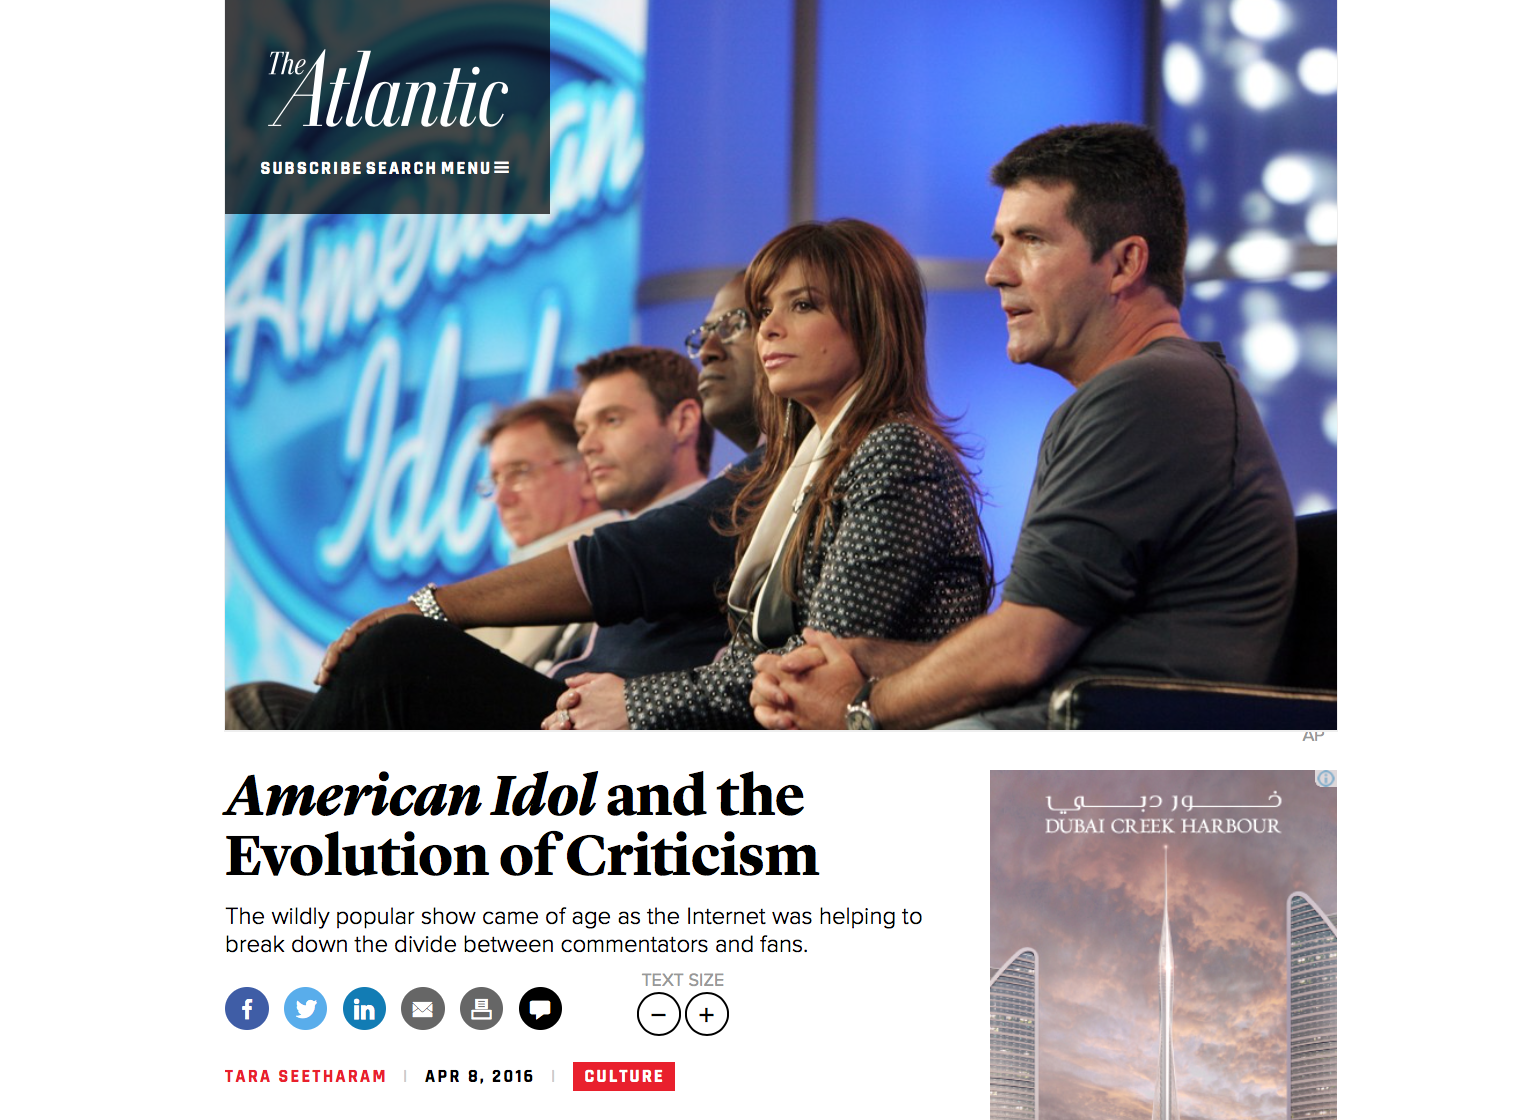 """American Idol"" and the evolution of criticism   The Atlantic - April 8, 2016"